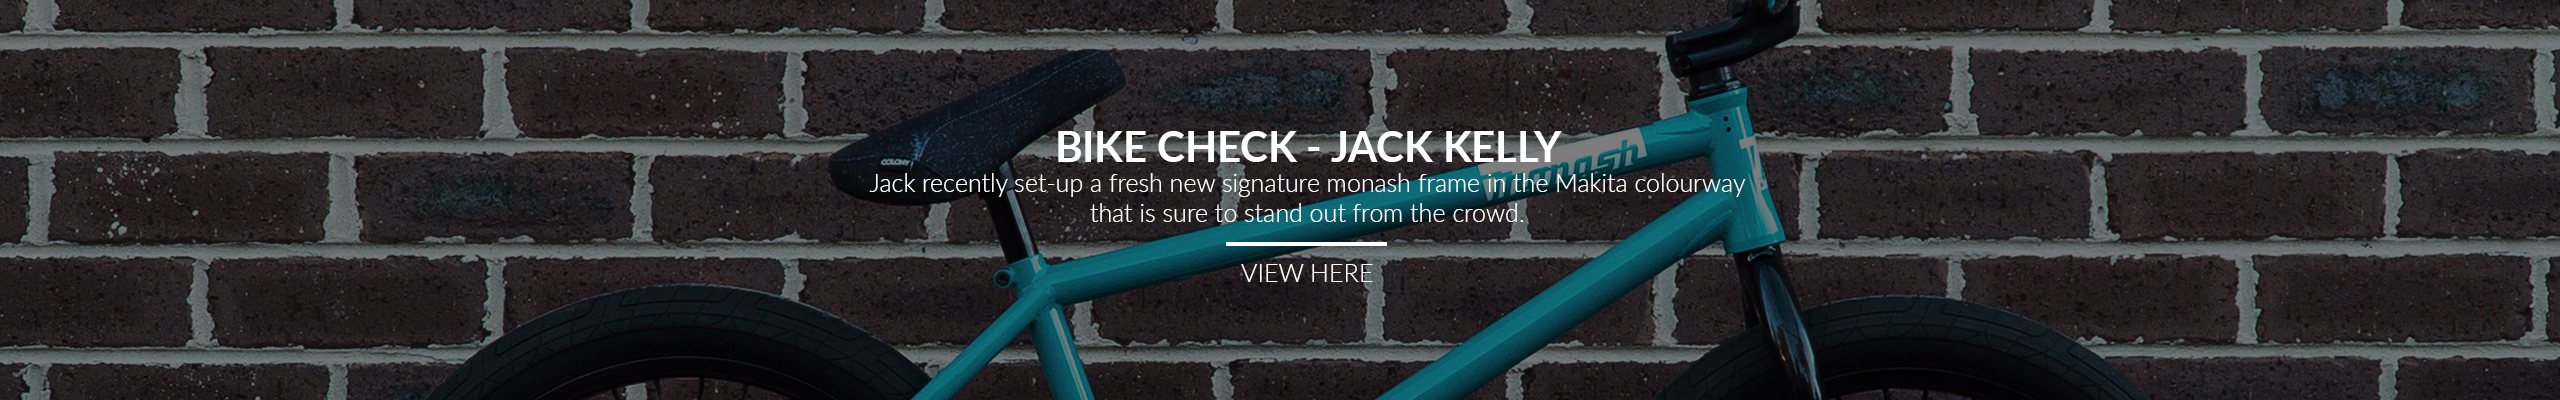 jack kelly bike check